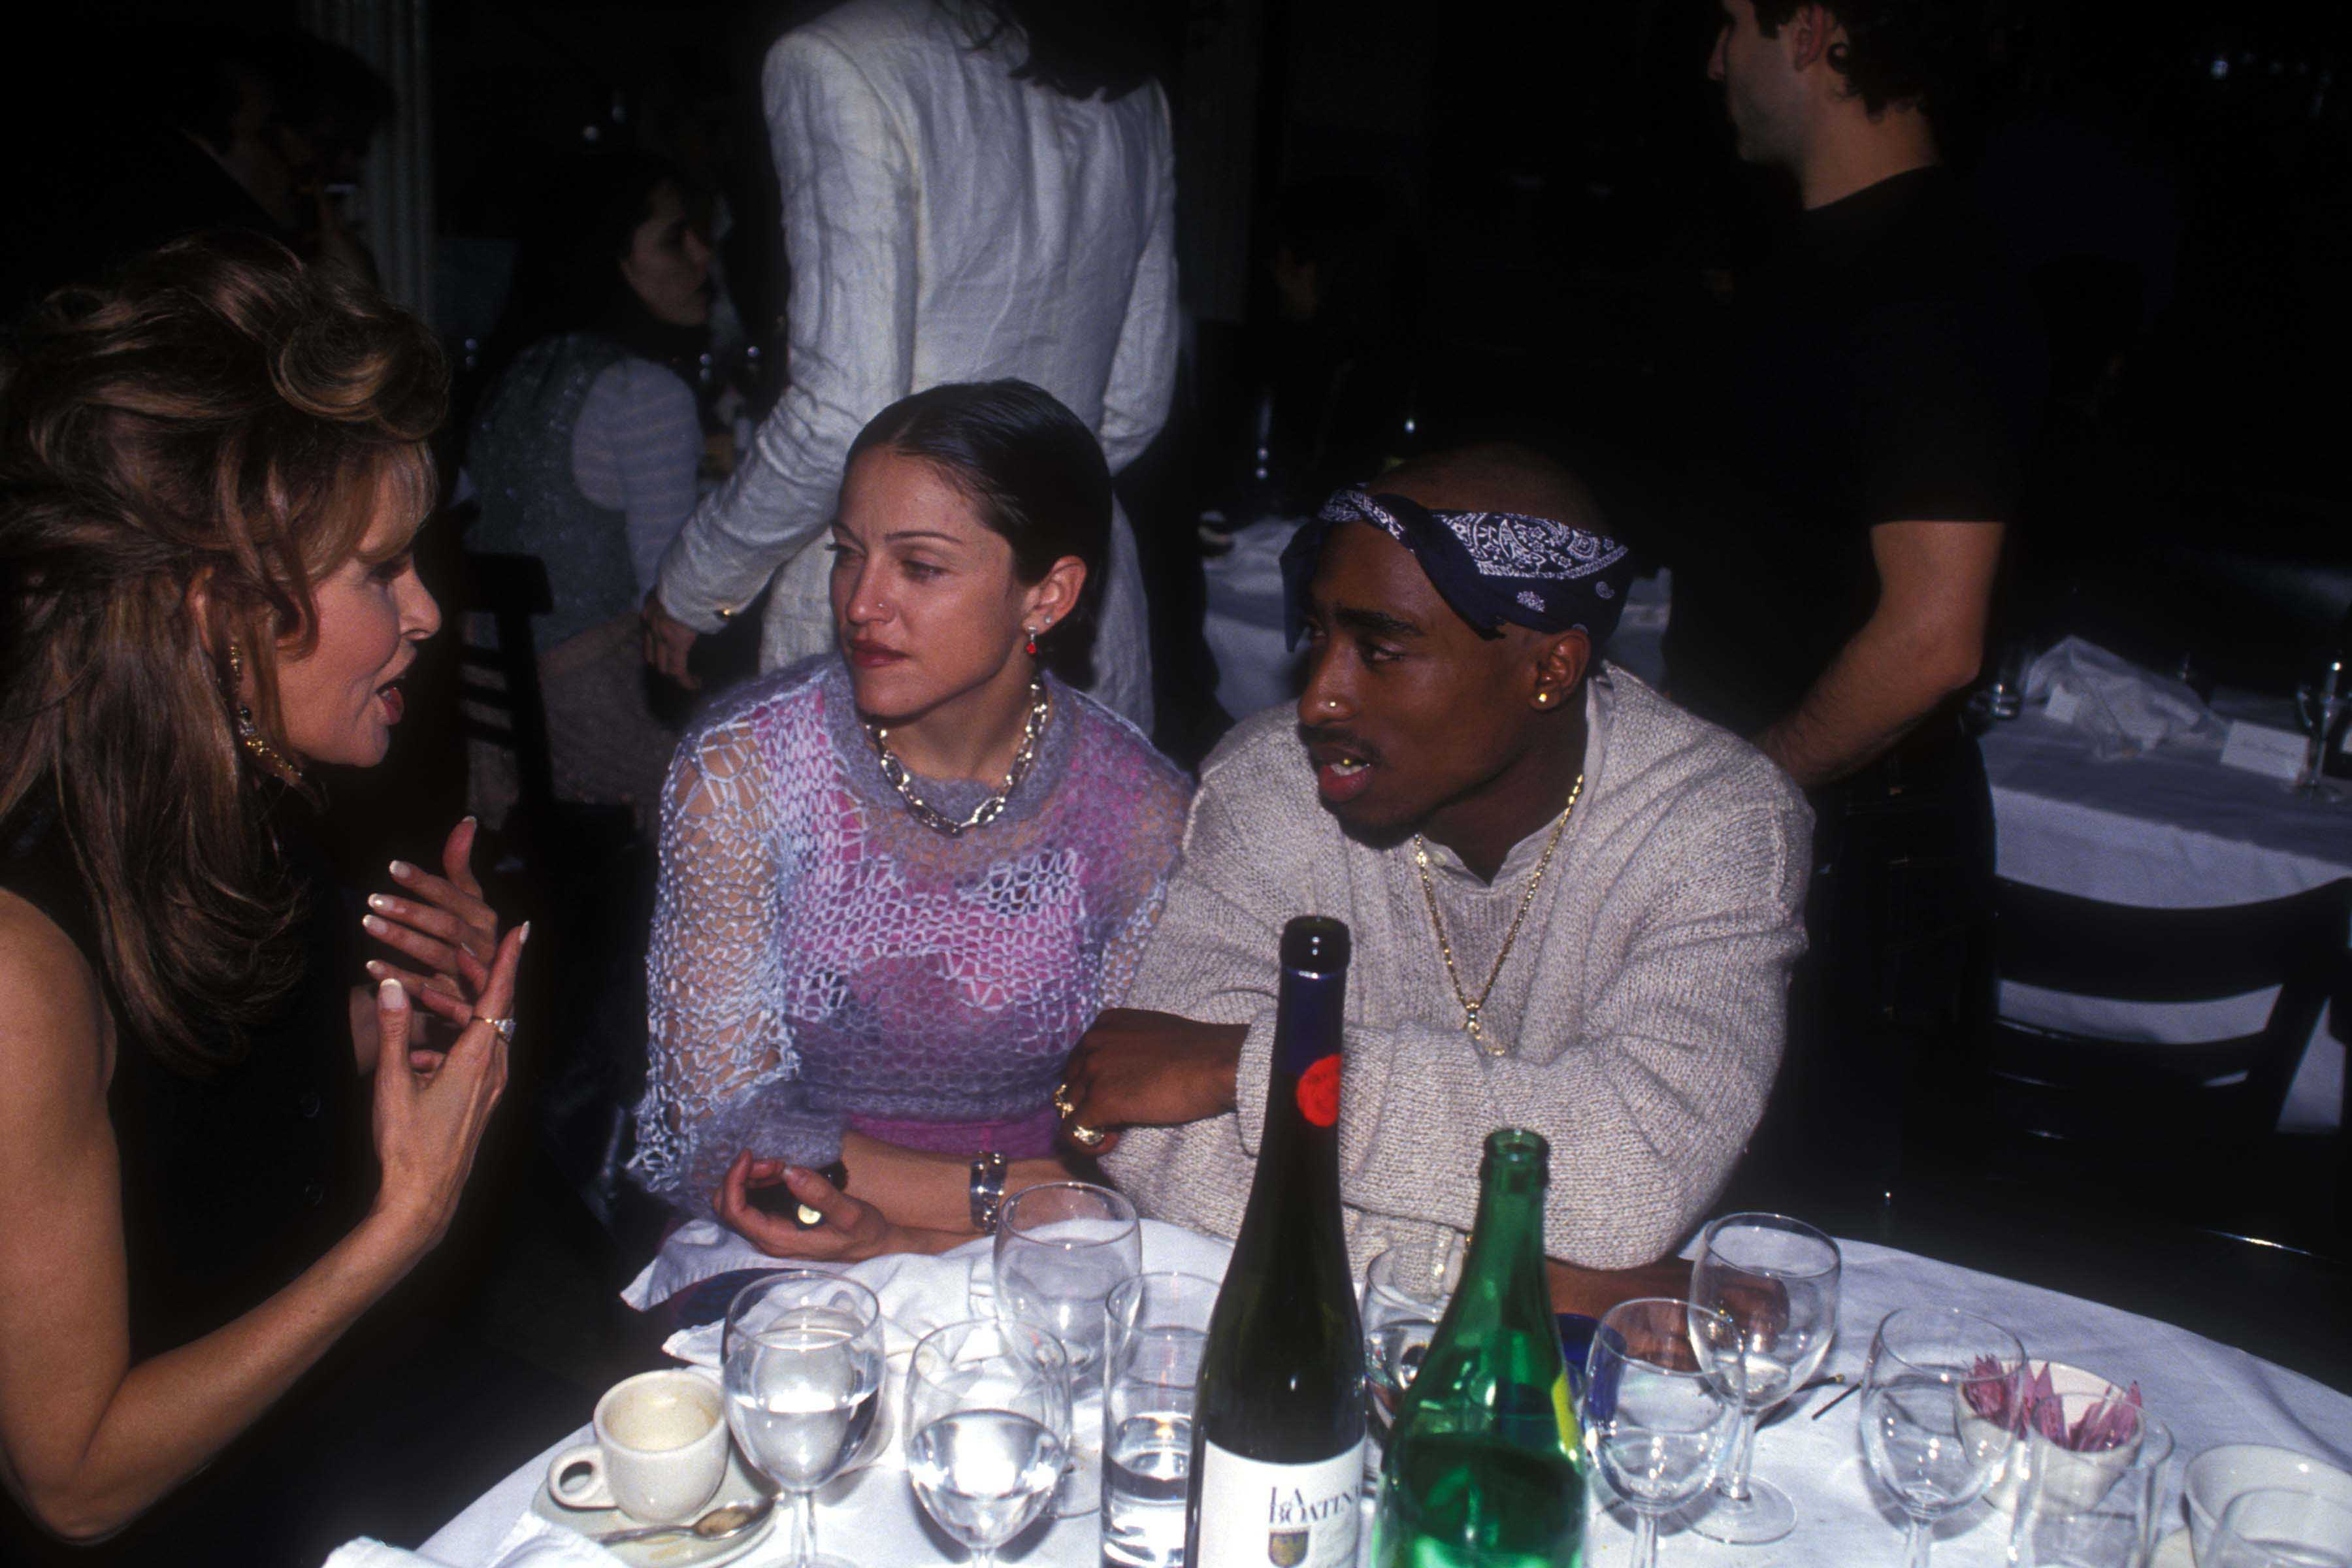 Raquel Welch, Madonna and Tupac Shakur at the Interview Magazine party in March 1, 1994 in New York City. | Photo: GettyImages